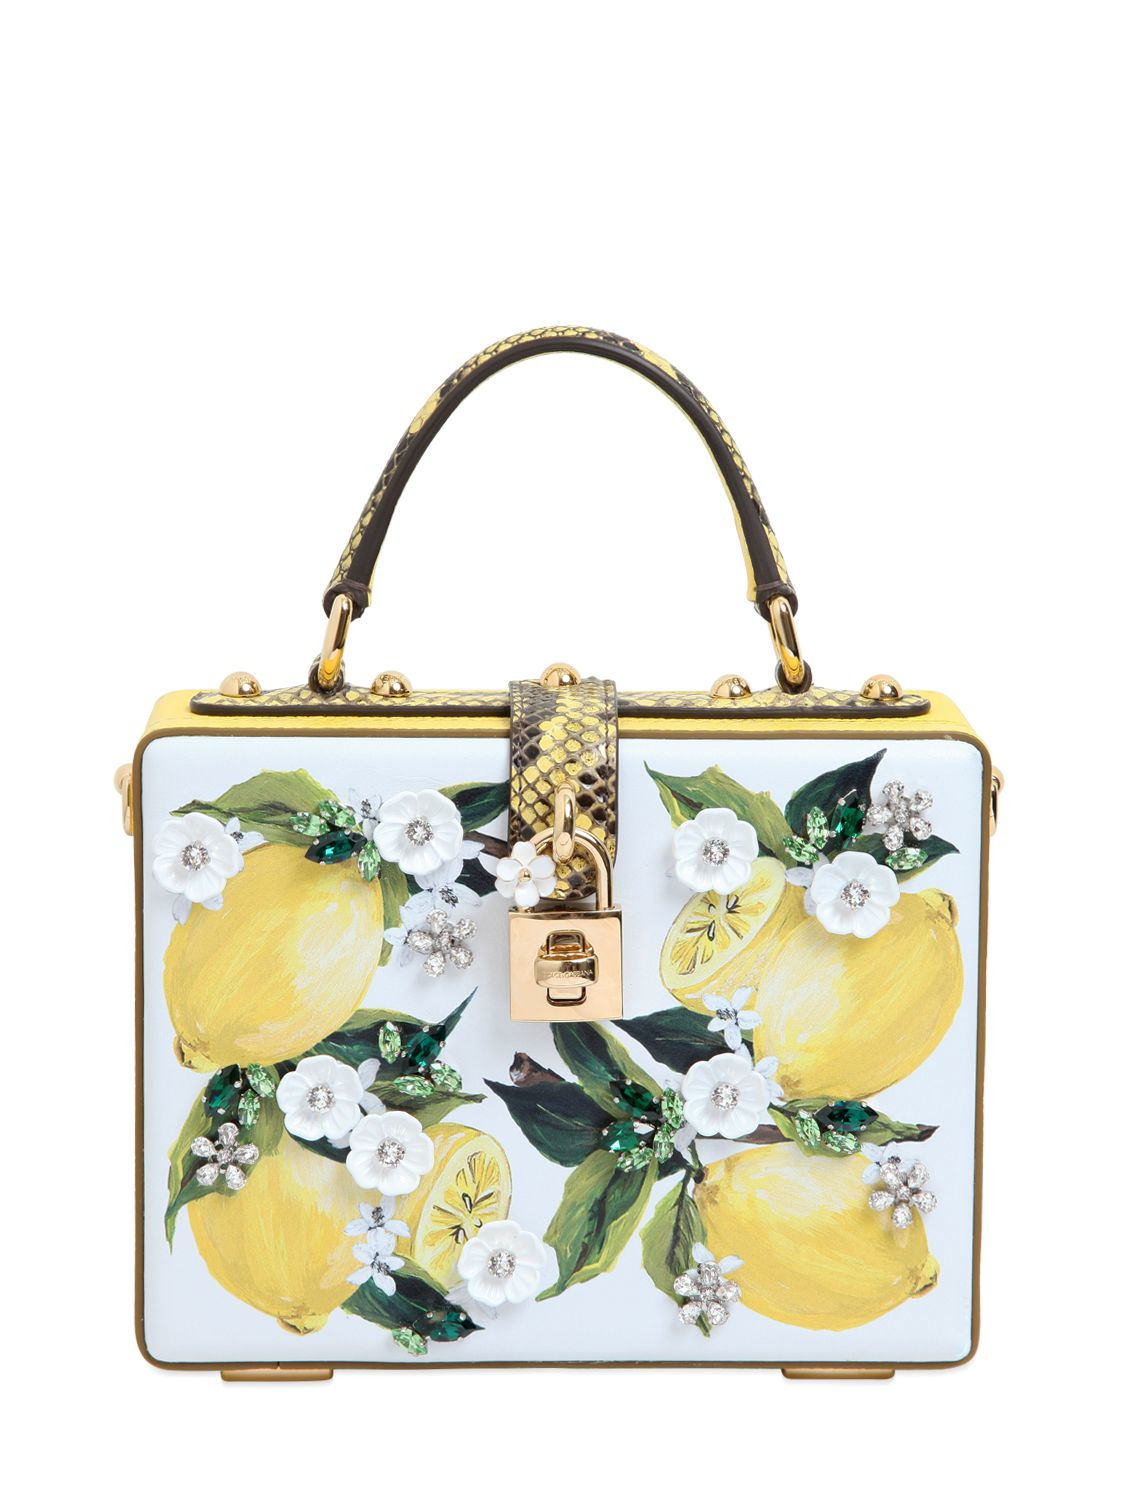 Lyst - Dolce   Gabbana Lemon Printed Leather Dolce Bag in Yellow fd507b85333a6